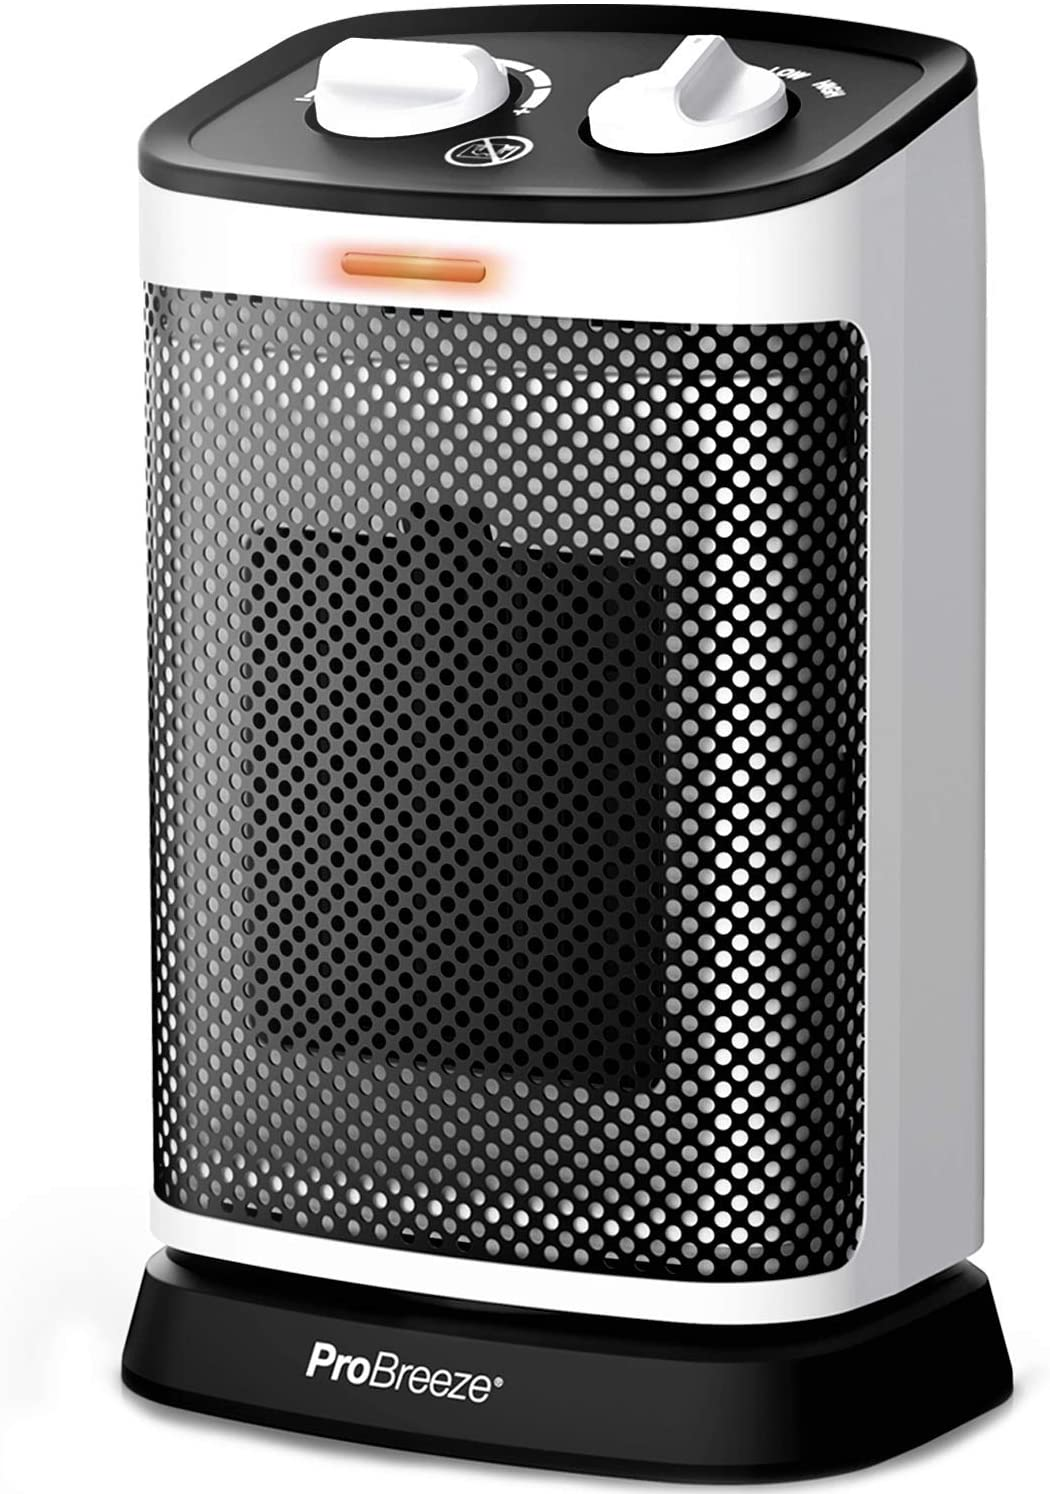 Pro Breeze Space Heater – Premium 1500W Oscillating Electric Heater, Rotates 70° with 6 Operation Modes, Adjustable Thermostat, Overheat and Tip-over Protection for Home, Office, Bedroom and Desk